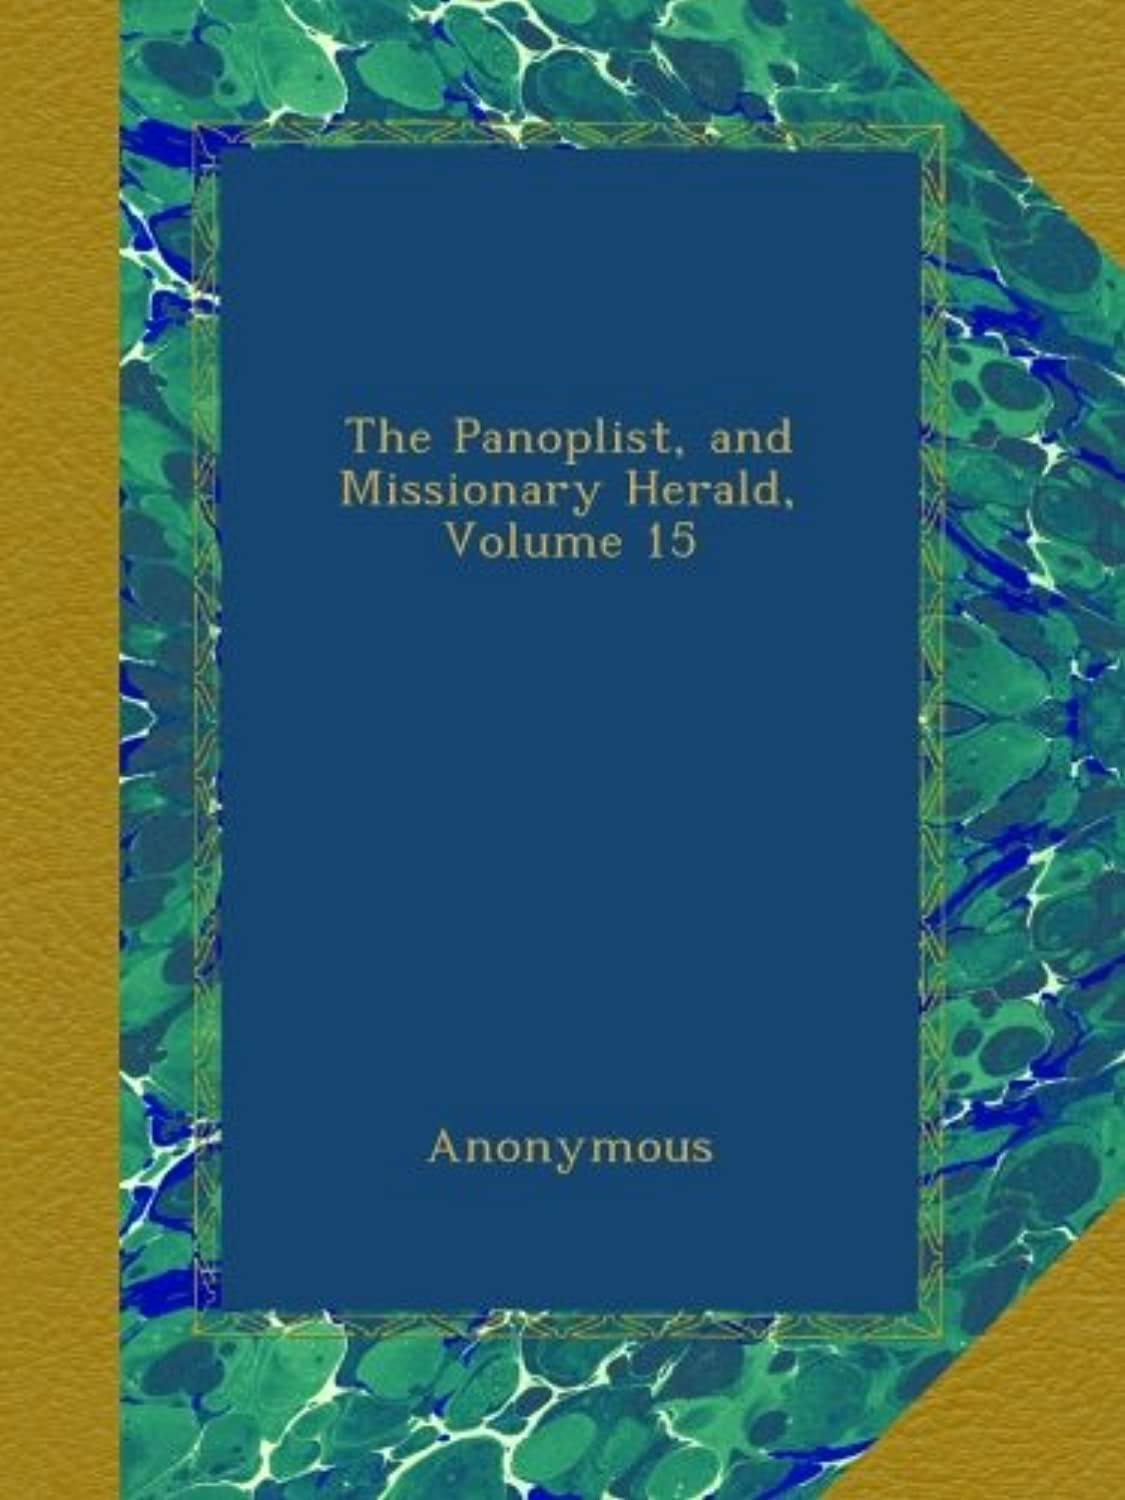 The Panoplist, and Missionary Herald, Volume 15